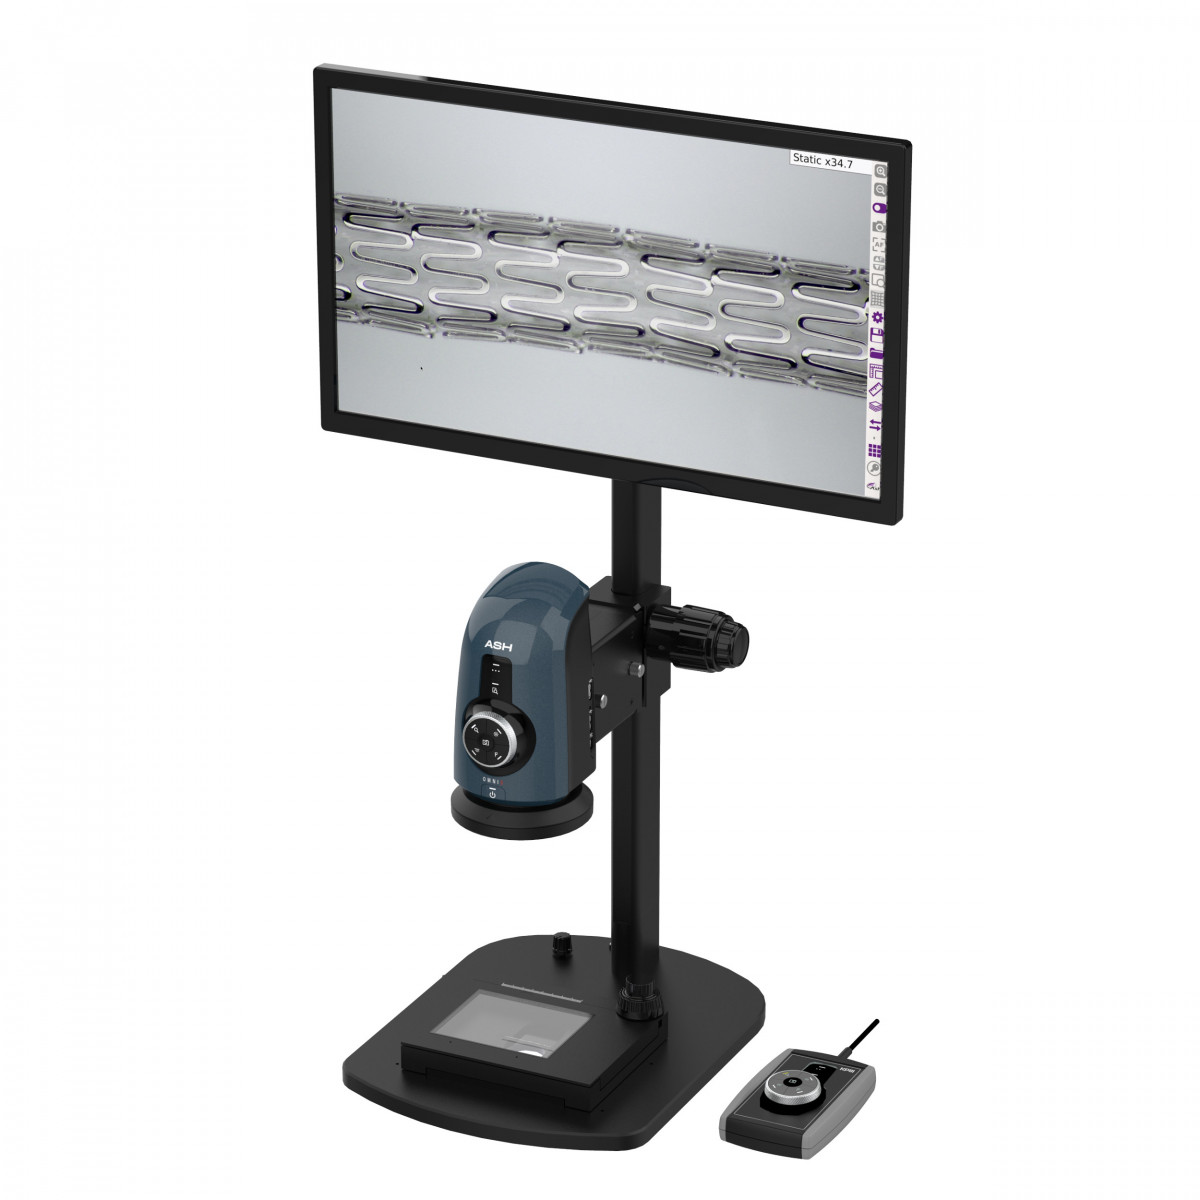 Omni 3 shown with optional stand, keypad, stage, monitor, and monitor bracket (mounts to top of stand)